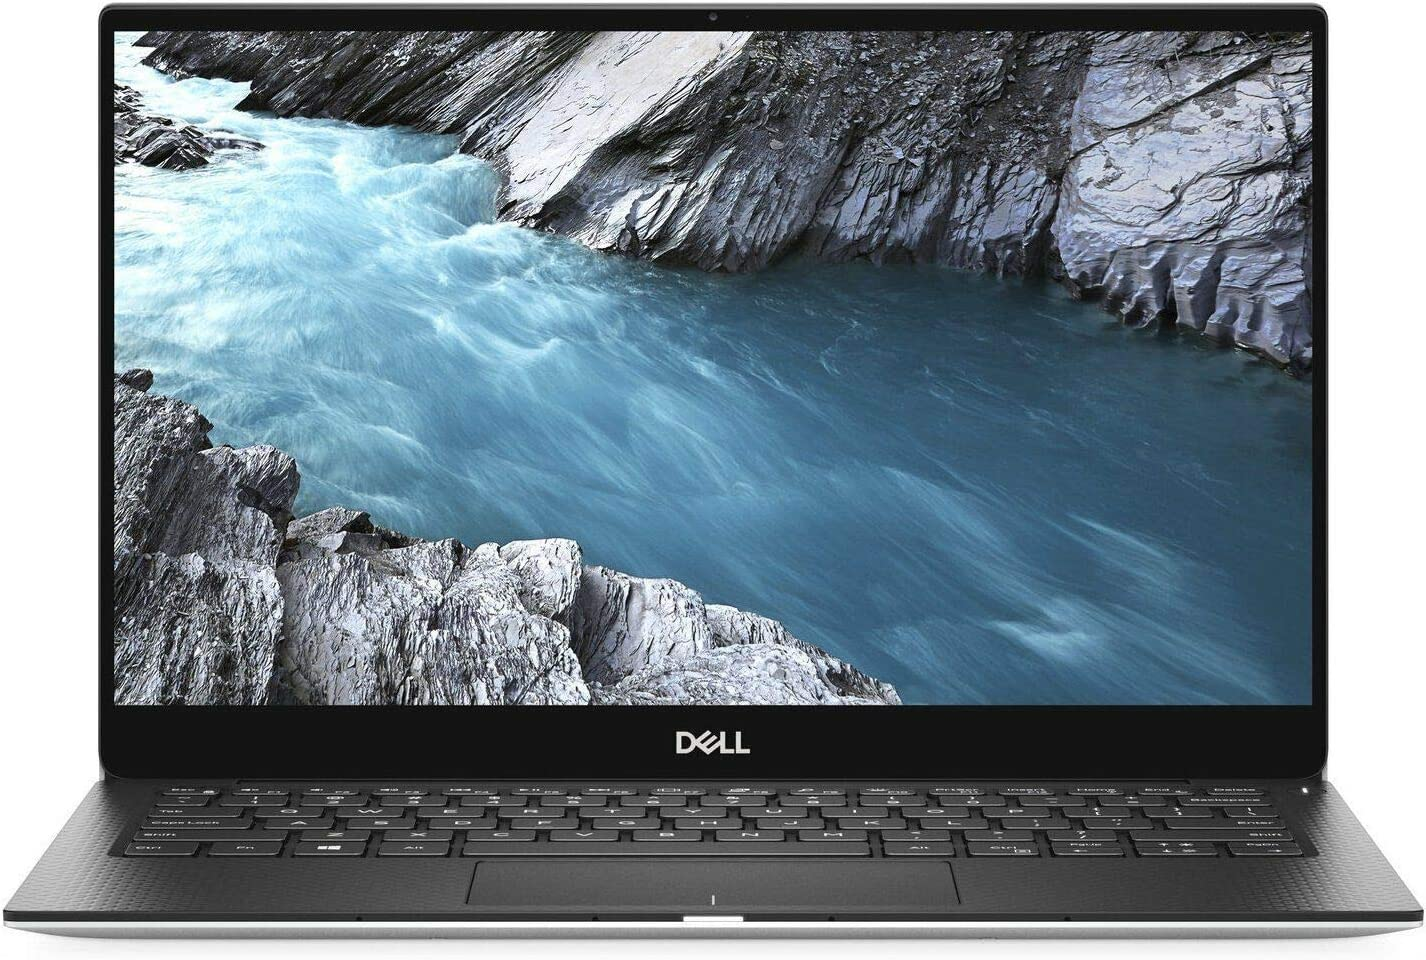 "Dell XPS 13 9380 13.3"" Notebook - 1920 X 1080 - Core I5-8265U - 8GB RAM - 256GB SSD - Platinum Silver, Carbon Black"